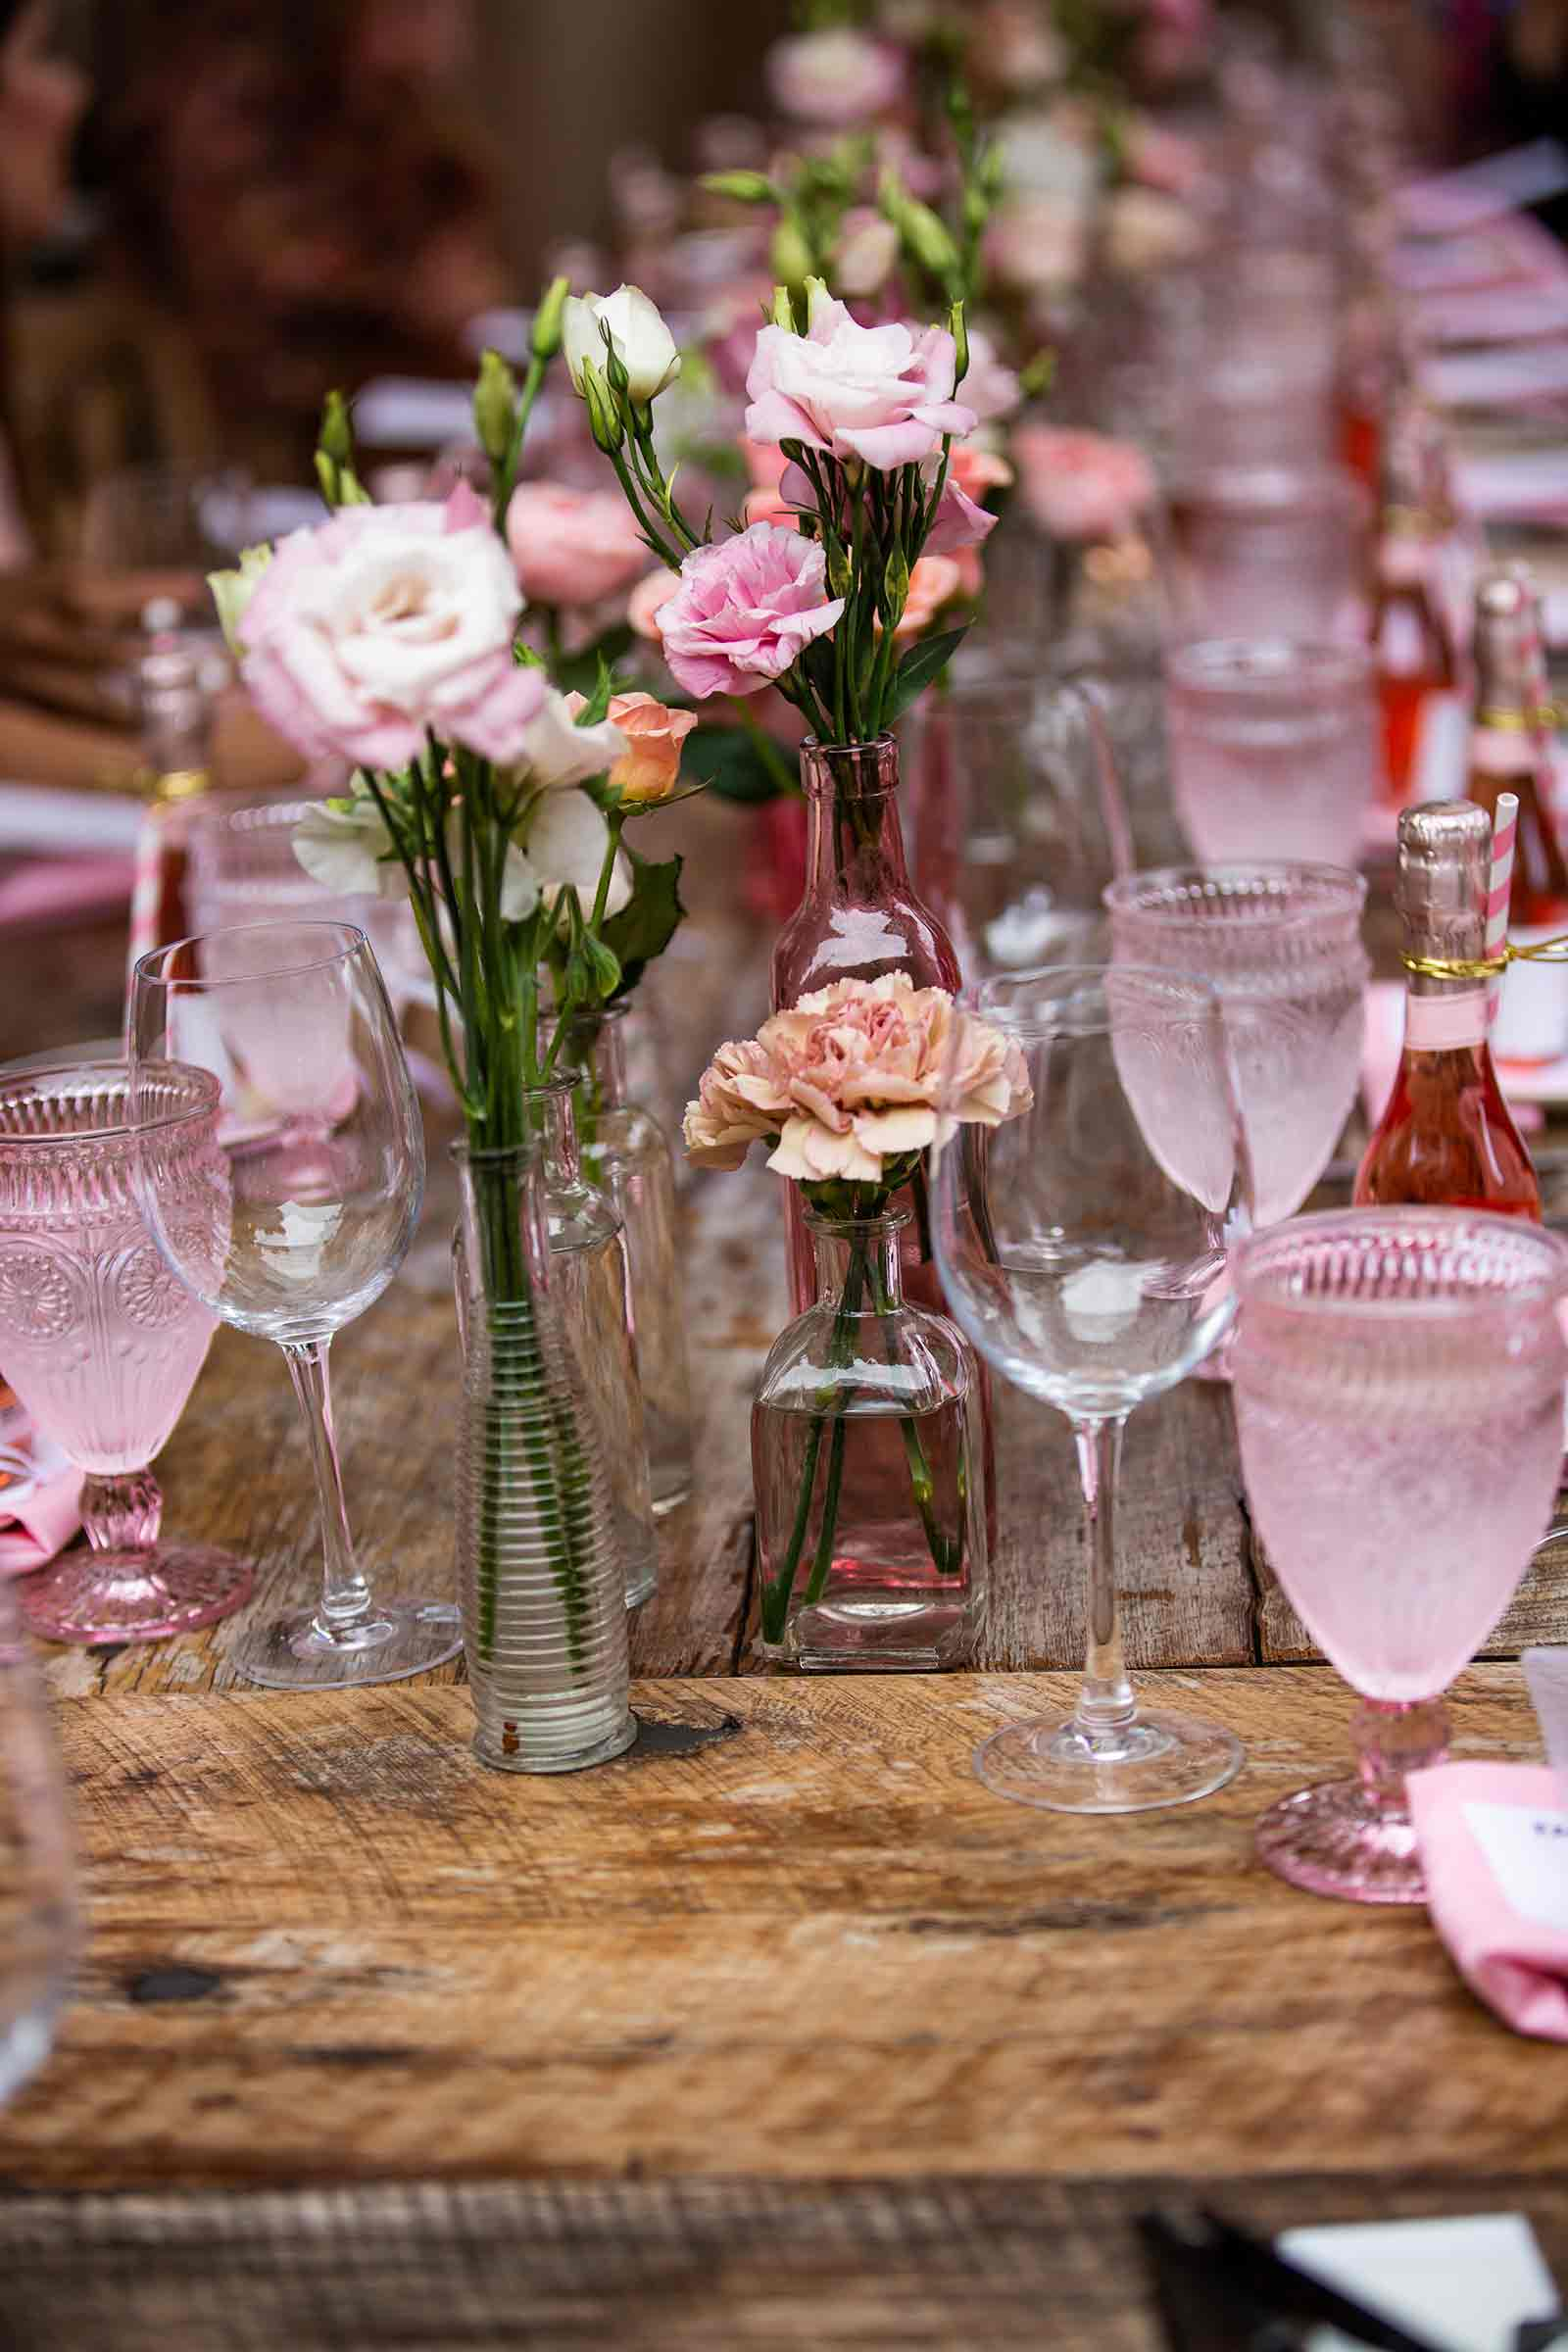 An image of pink roses surrounded by pink glasses